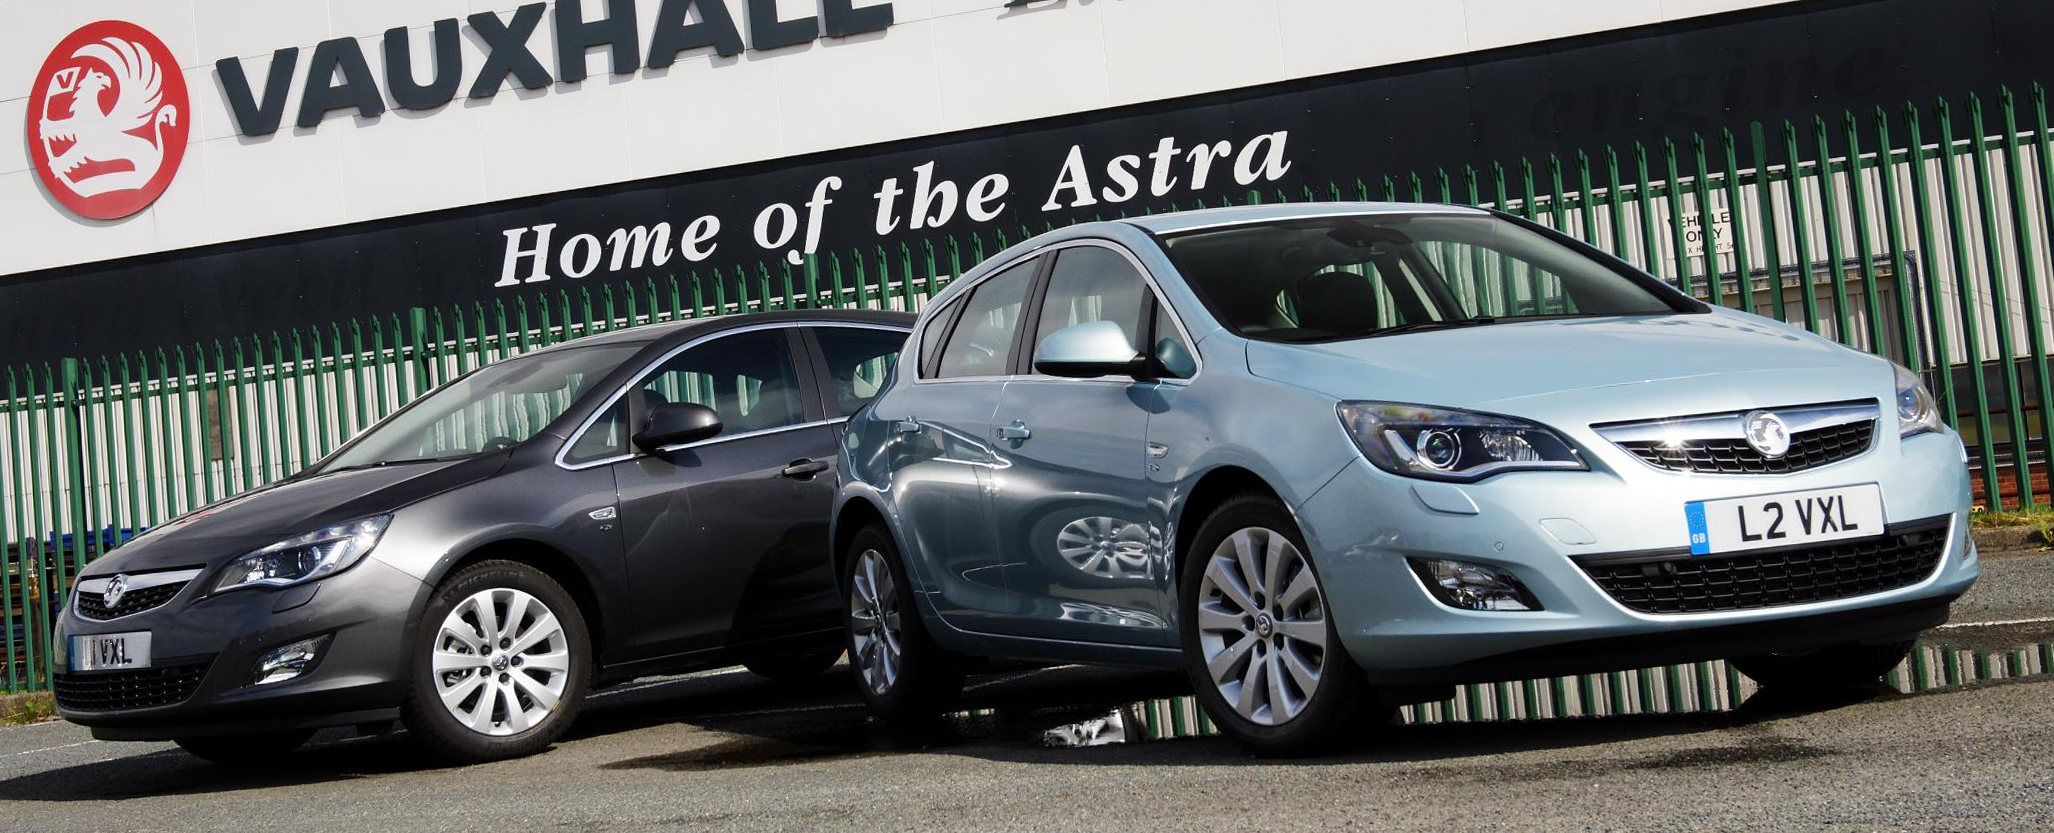 Used Astra Ultimate Buyers Guide Mk6 2009 2015 Vauxhall Small Cars Which Is The Best Astras